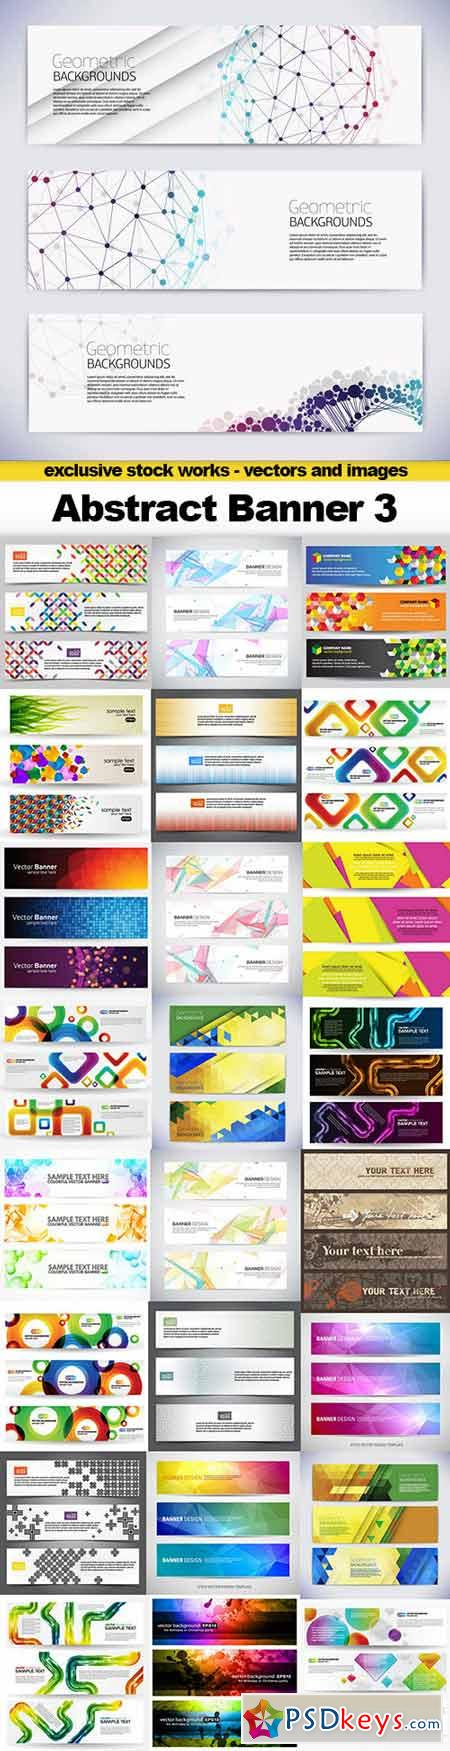 Abstract Banner Vector Collection 3 - 25x EPS